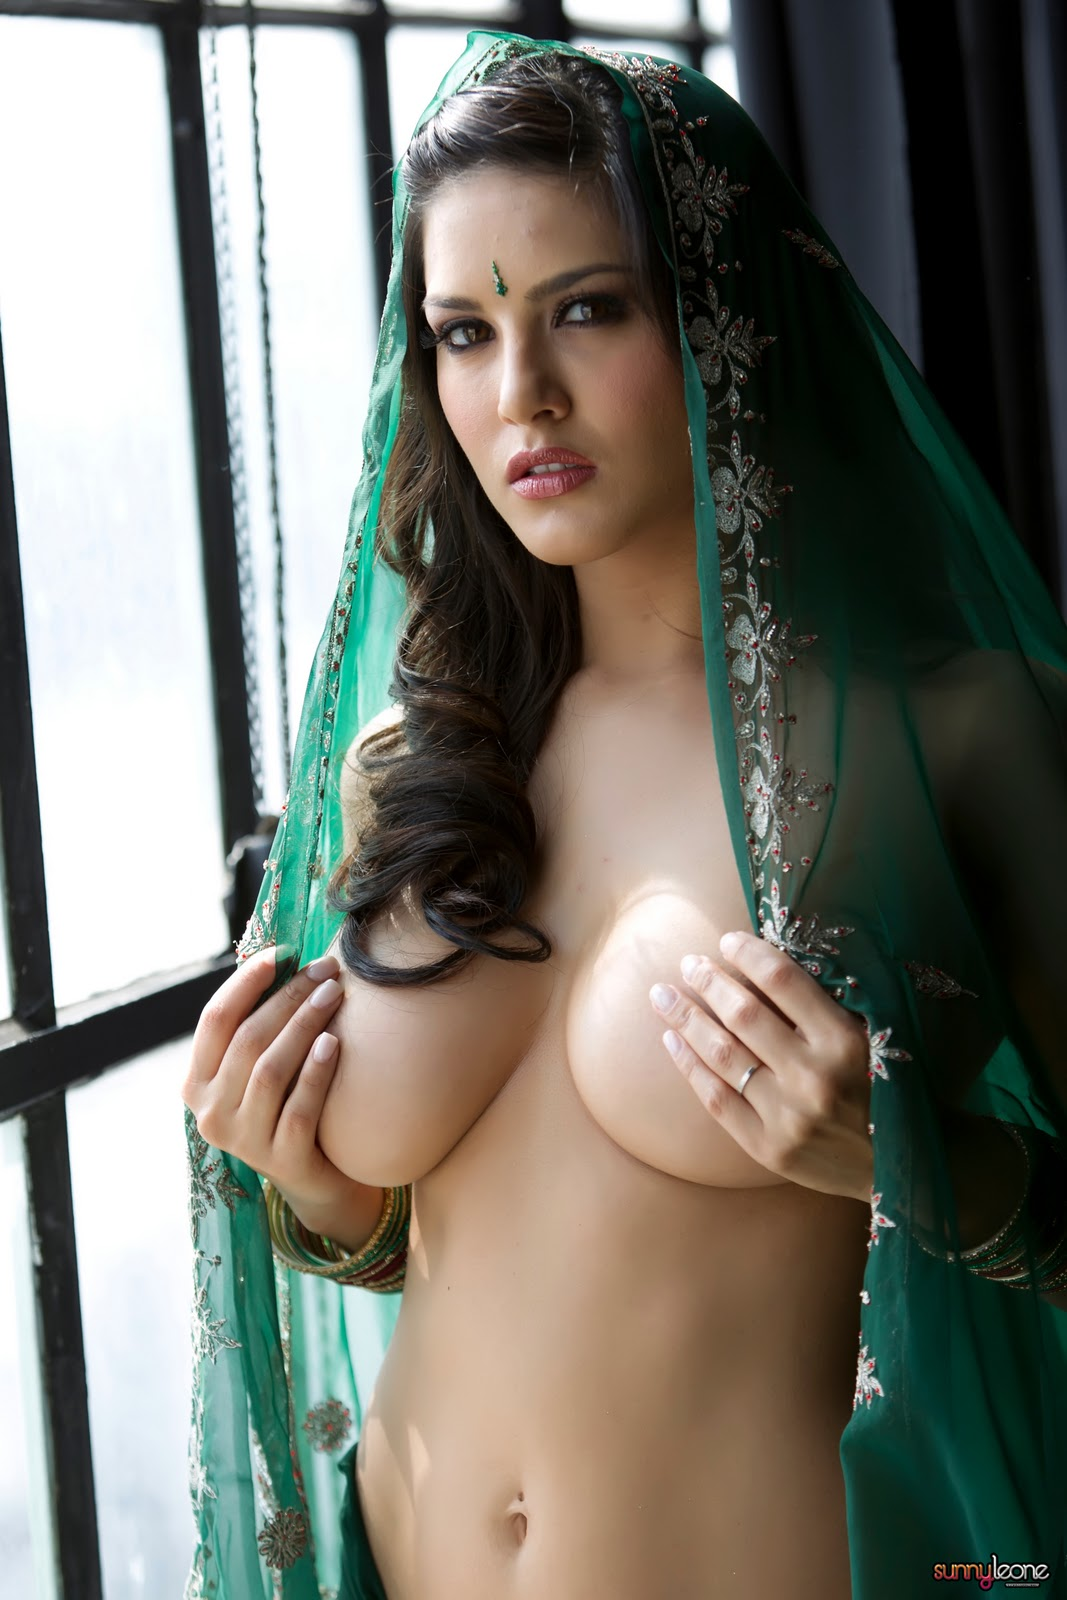 sexclusive stills sunny leone erotically exposes her boobs through